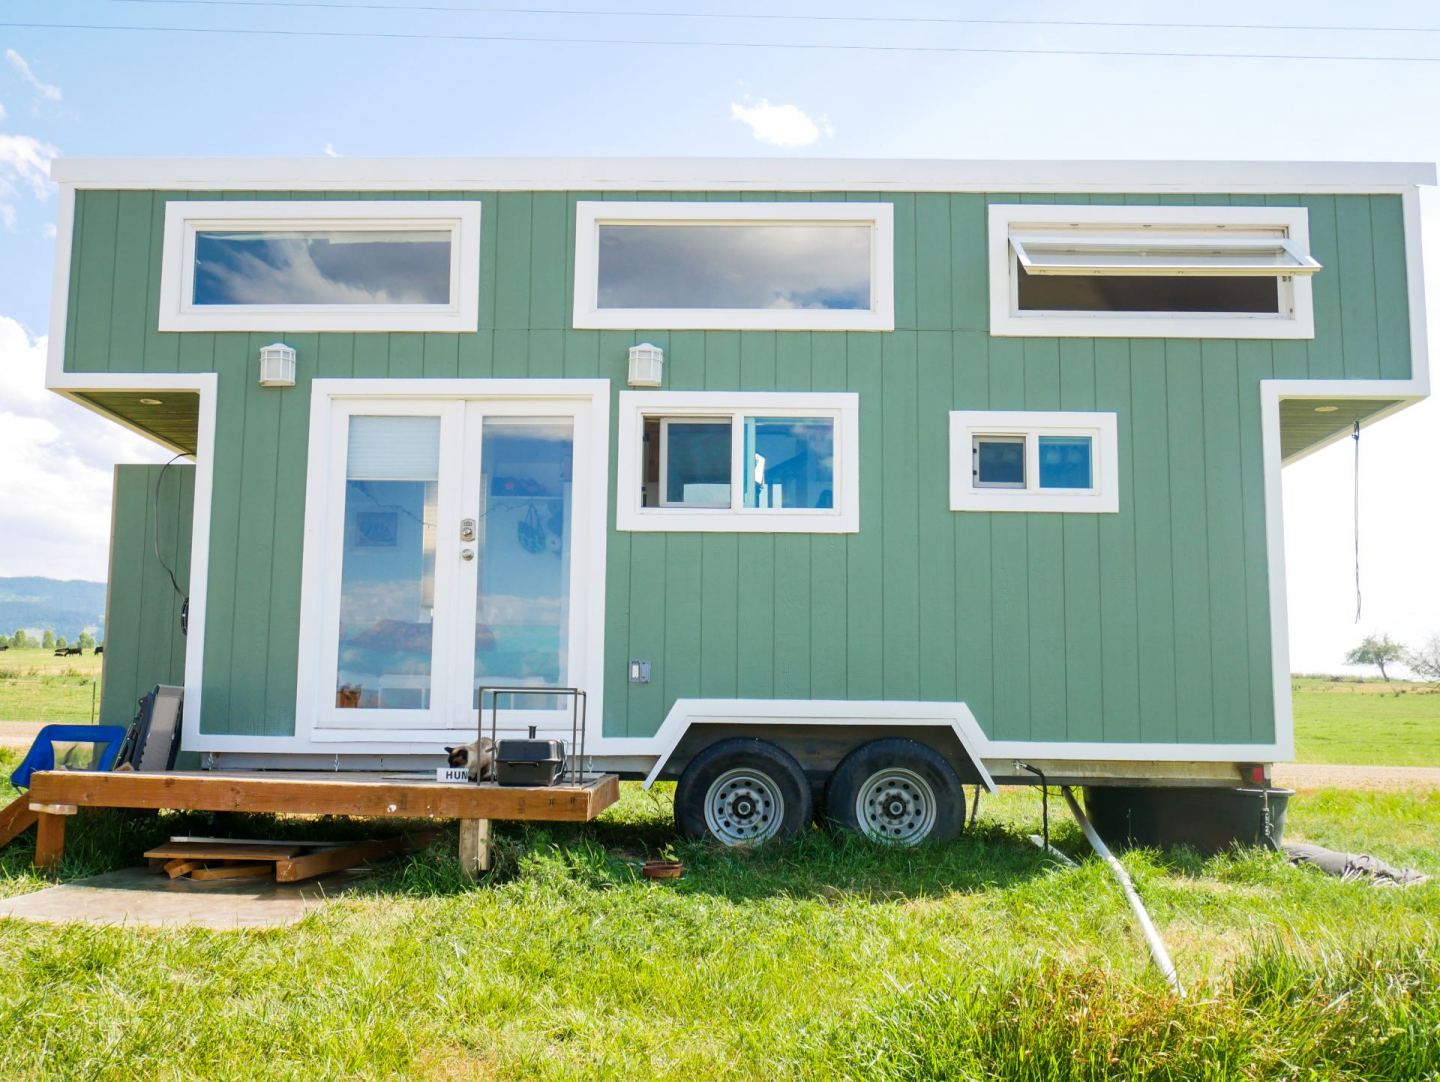 Used Tiny Houses – Is it a Good or Bad Idea to Buy?